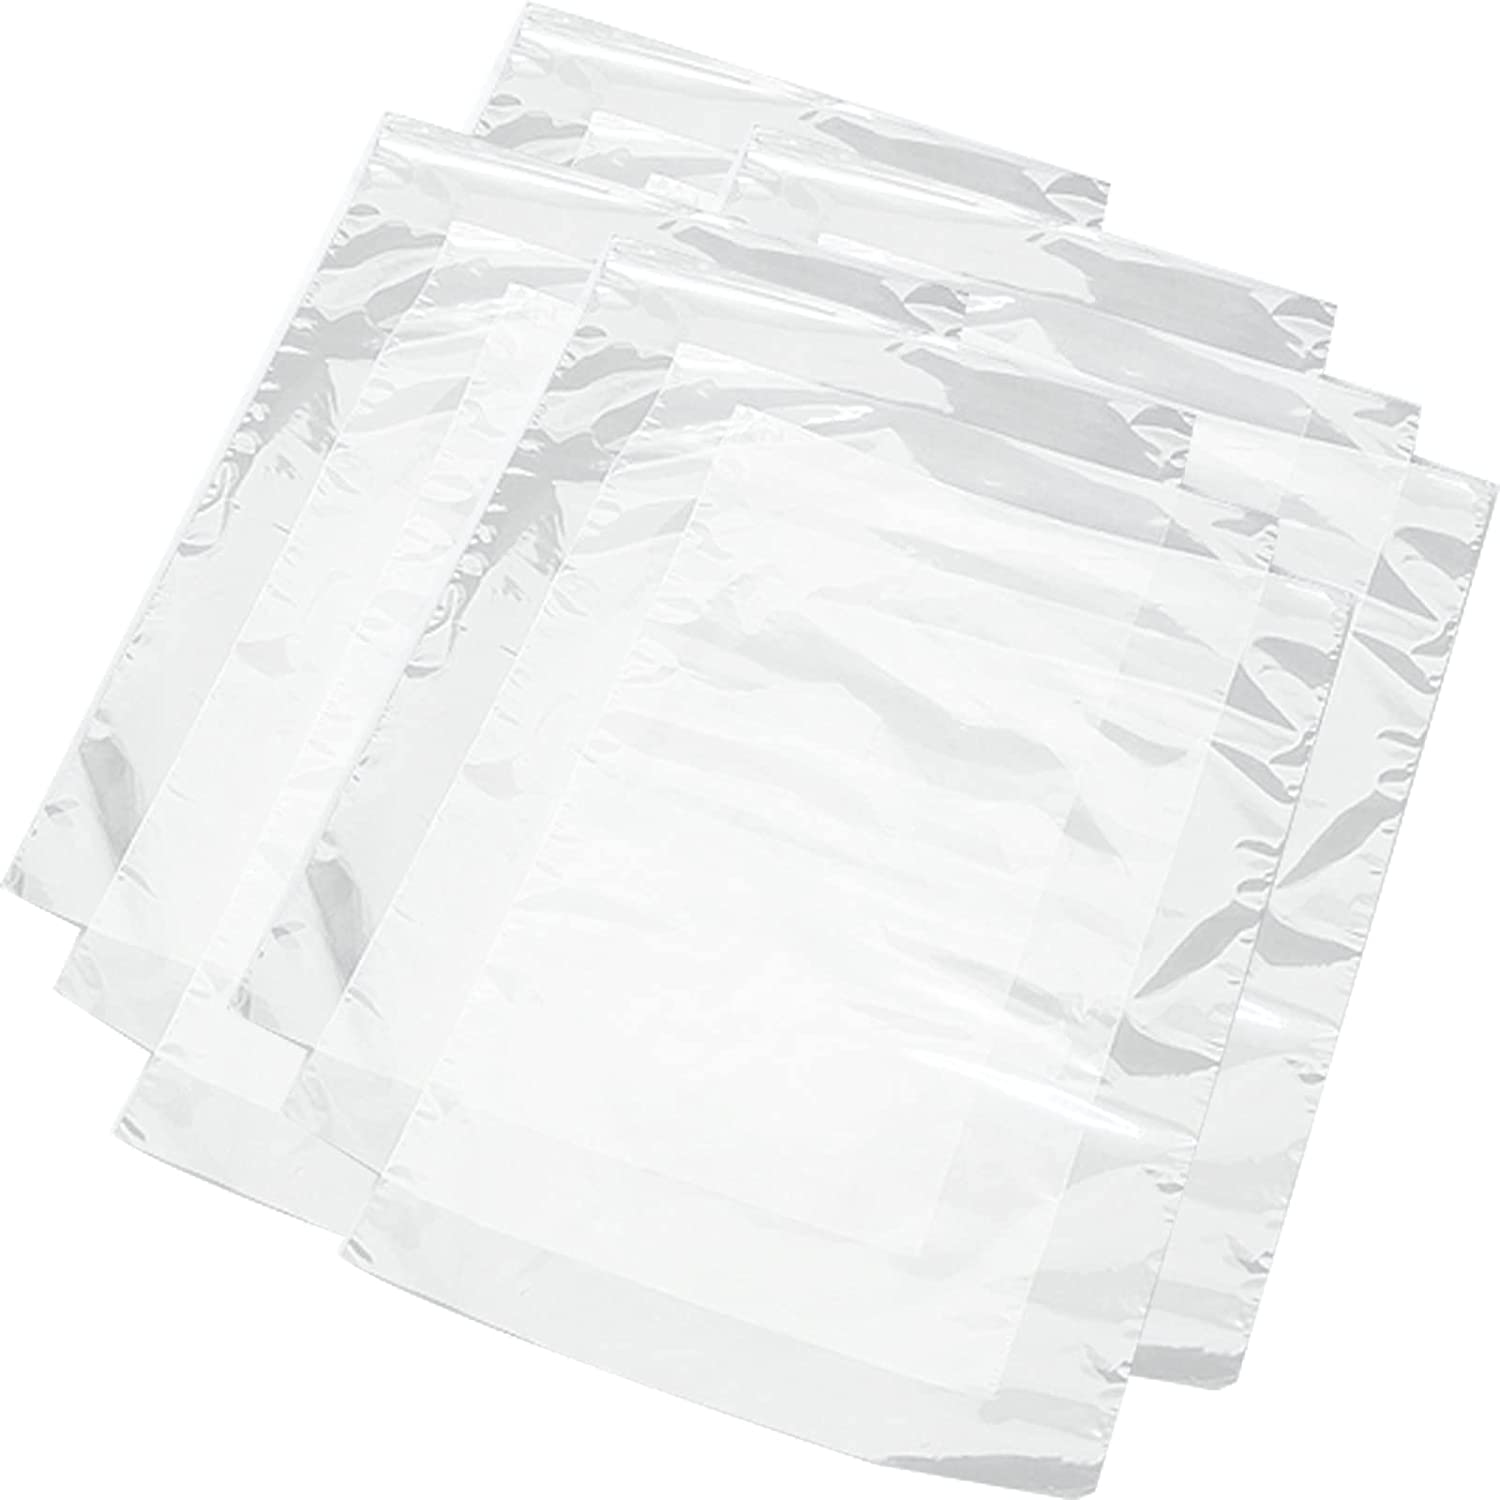 200 Pcs Shrink Wrap Bags YUTOU Credence Clear Shrin 4x6 online shopping Heat Odorless POF